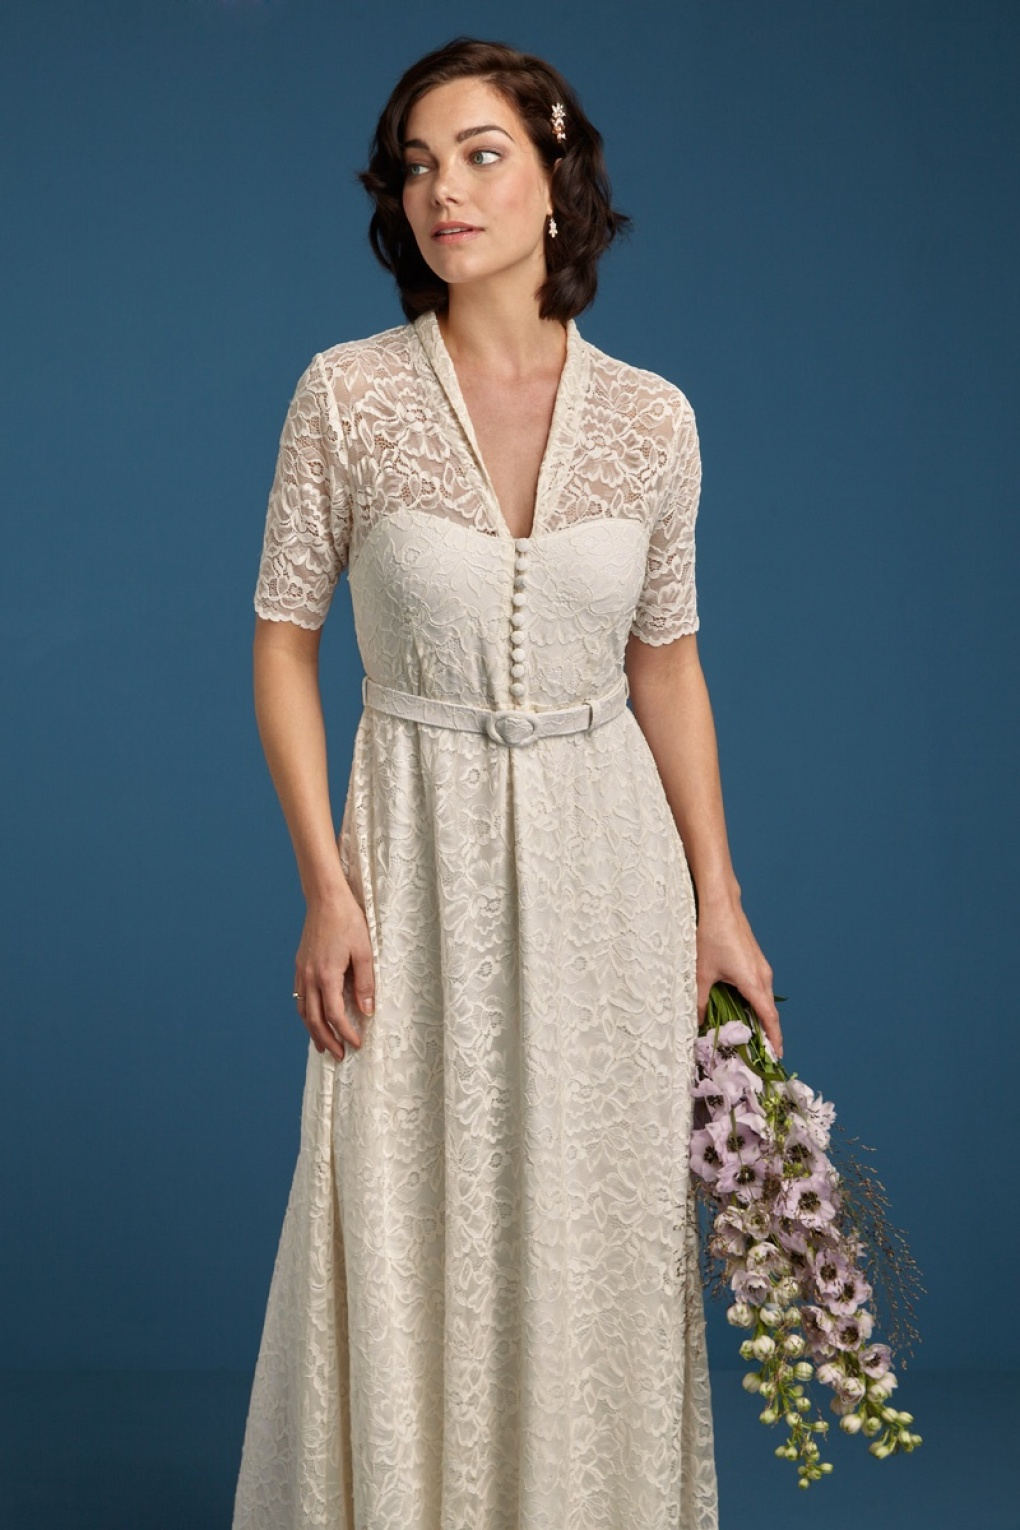 1960s Style Dresses, Clothing, Shoes UK 50s Emmy Dentelle Wedding Maxi Dress in Cream £258.83 AT vintagedancer.com